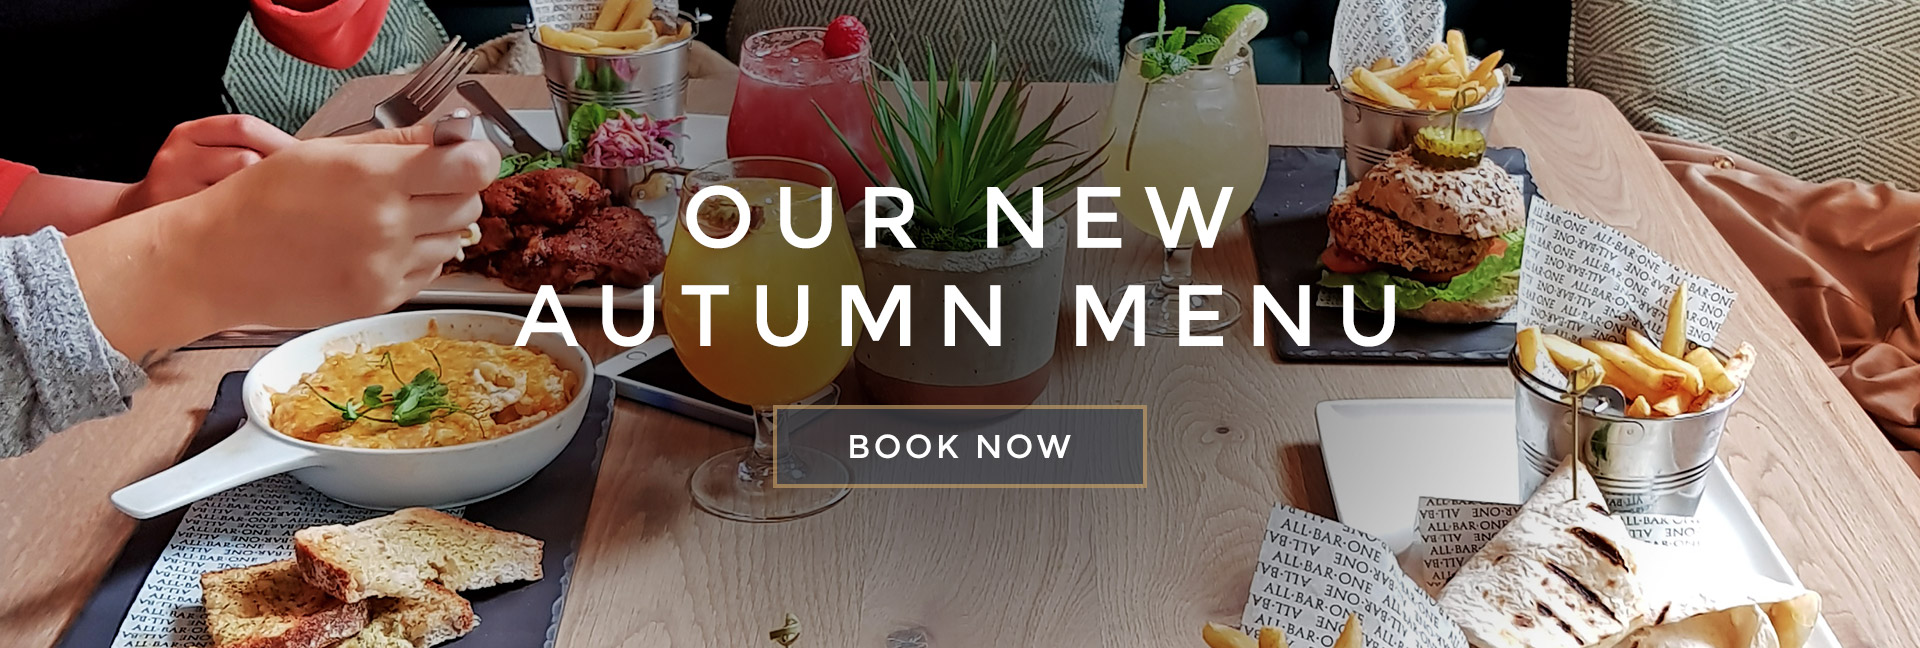 Our new Autumn menu at All Bar One West Quay - Book now